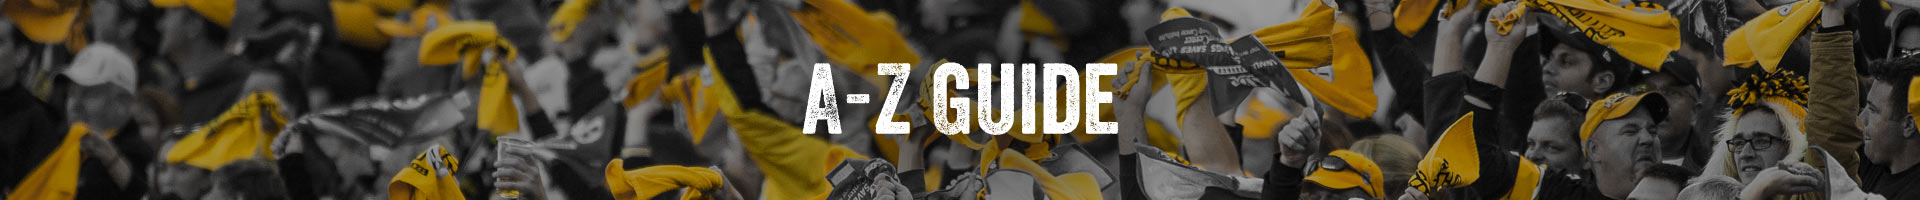 Heinz Field Guest Services A to Z